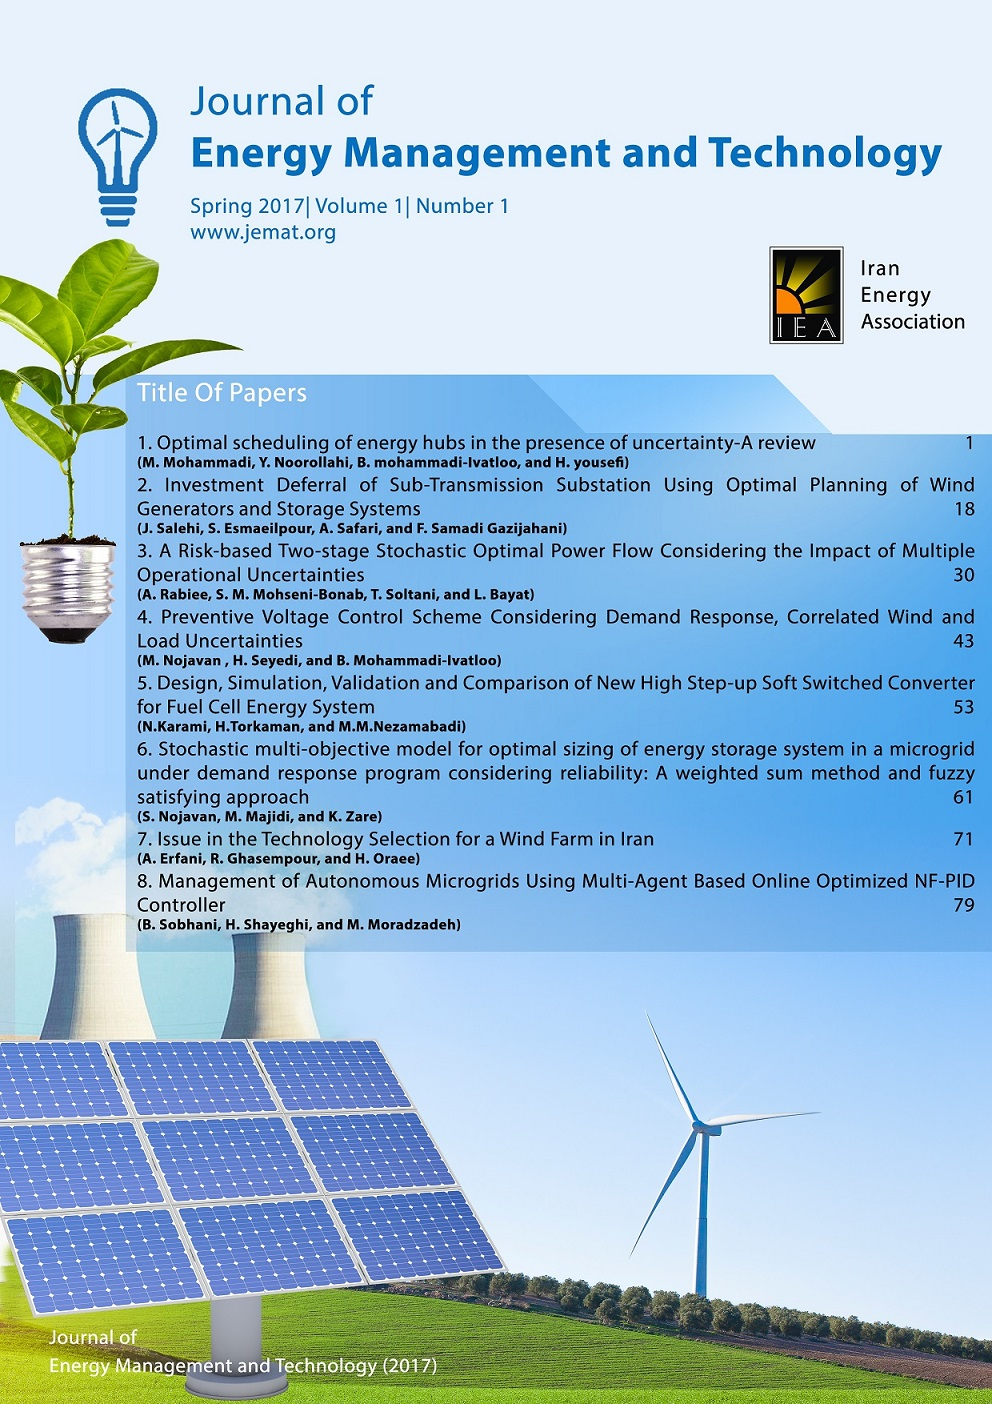 Journal of Energy Management and Technology